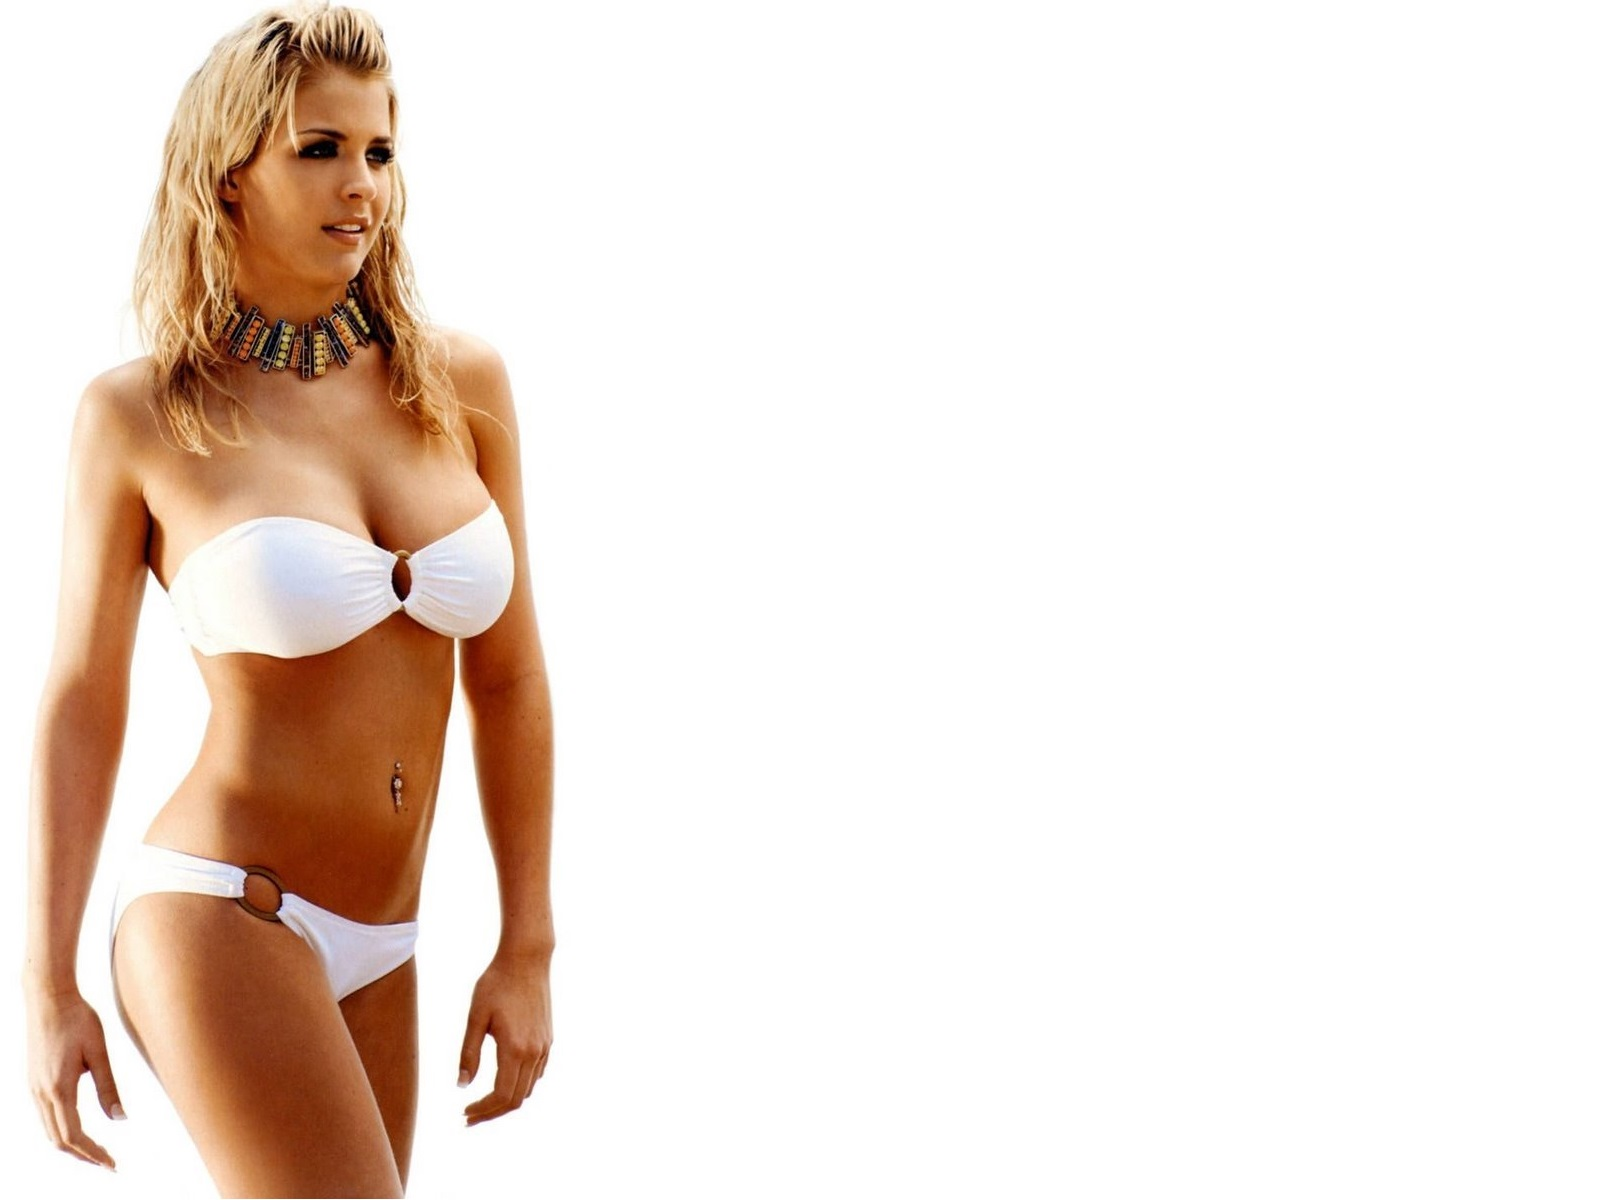 Anime Girl Wallpaper Hd Icon Hot Sexy White Bikini Gemma Atkinson Wallpaper